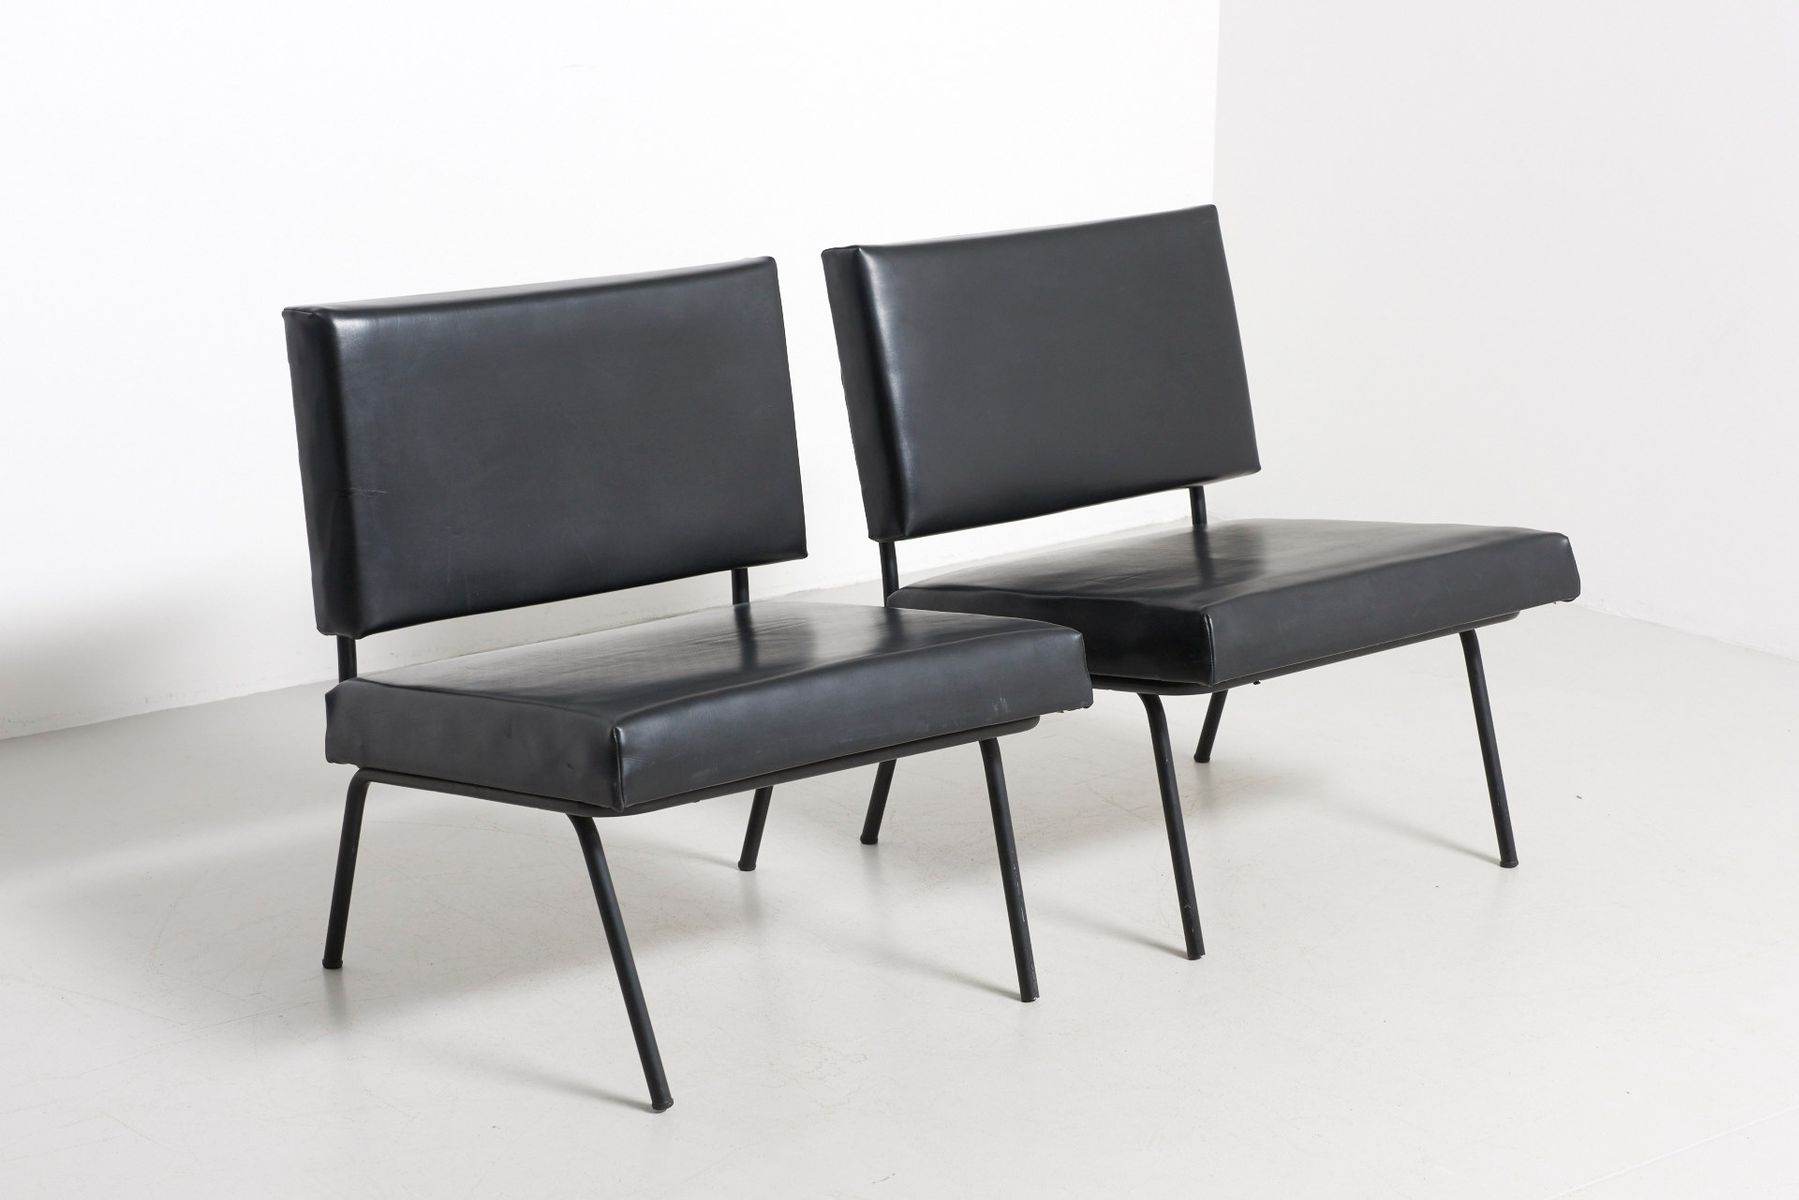 st hle aus schwarzem skai leder von florence knoll f r knoll 1950er 2er set bei pamono kaufen. Black Bedroom Furniture Sets. Home Design Ideas